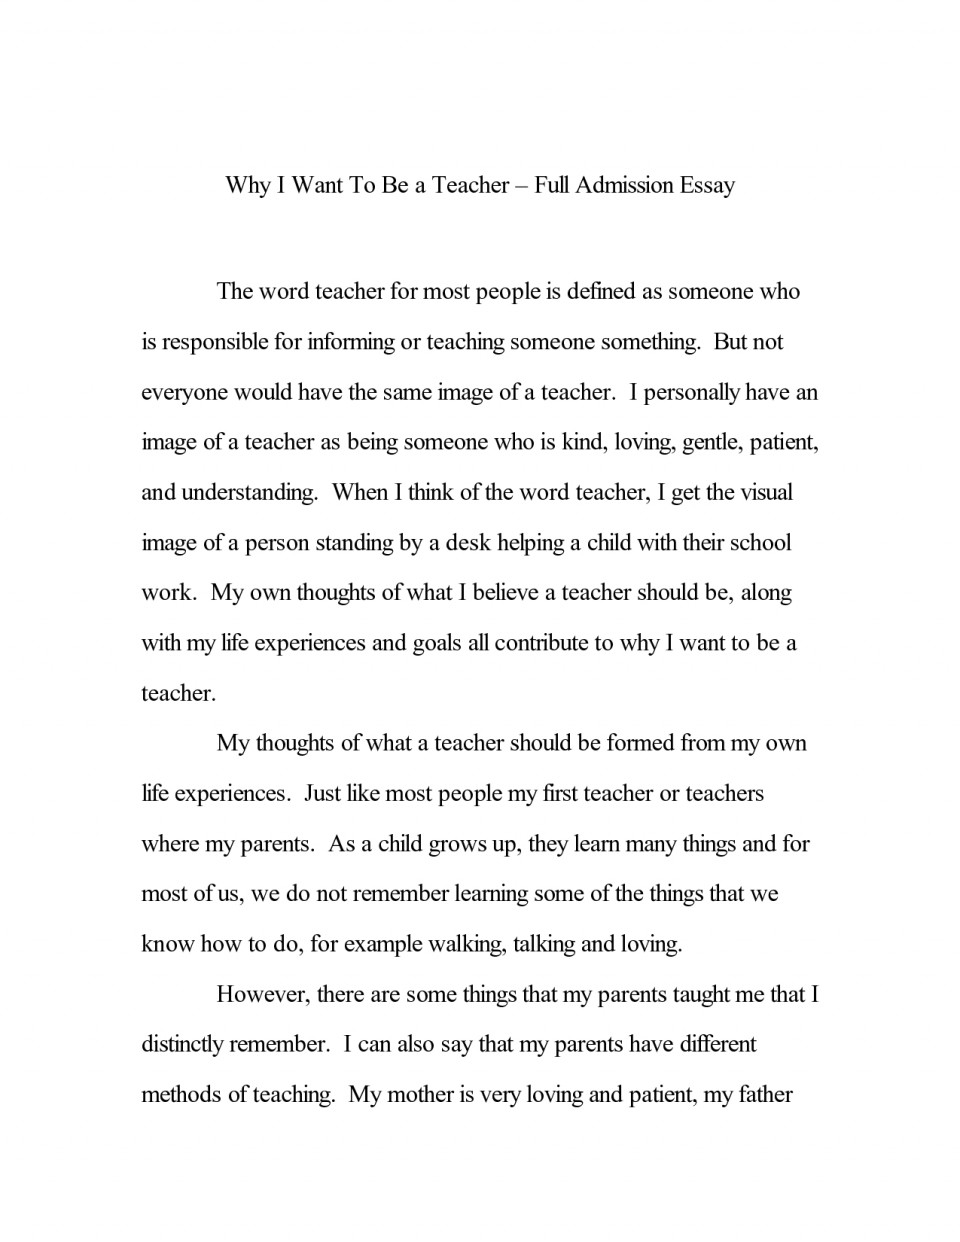 005 College Application Essay Example Writings And Essays What Is Personal For Ideal Vistalist Co I You The Format Topic Prompt Excellent Help Examples 500 Words Writing Workshop Pdf 960